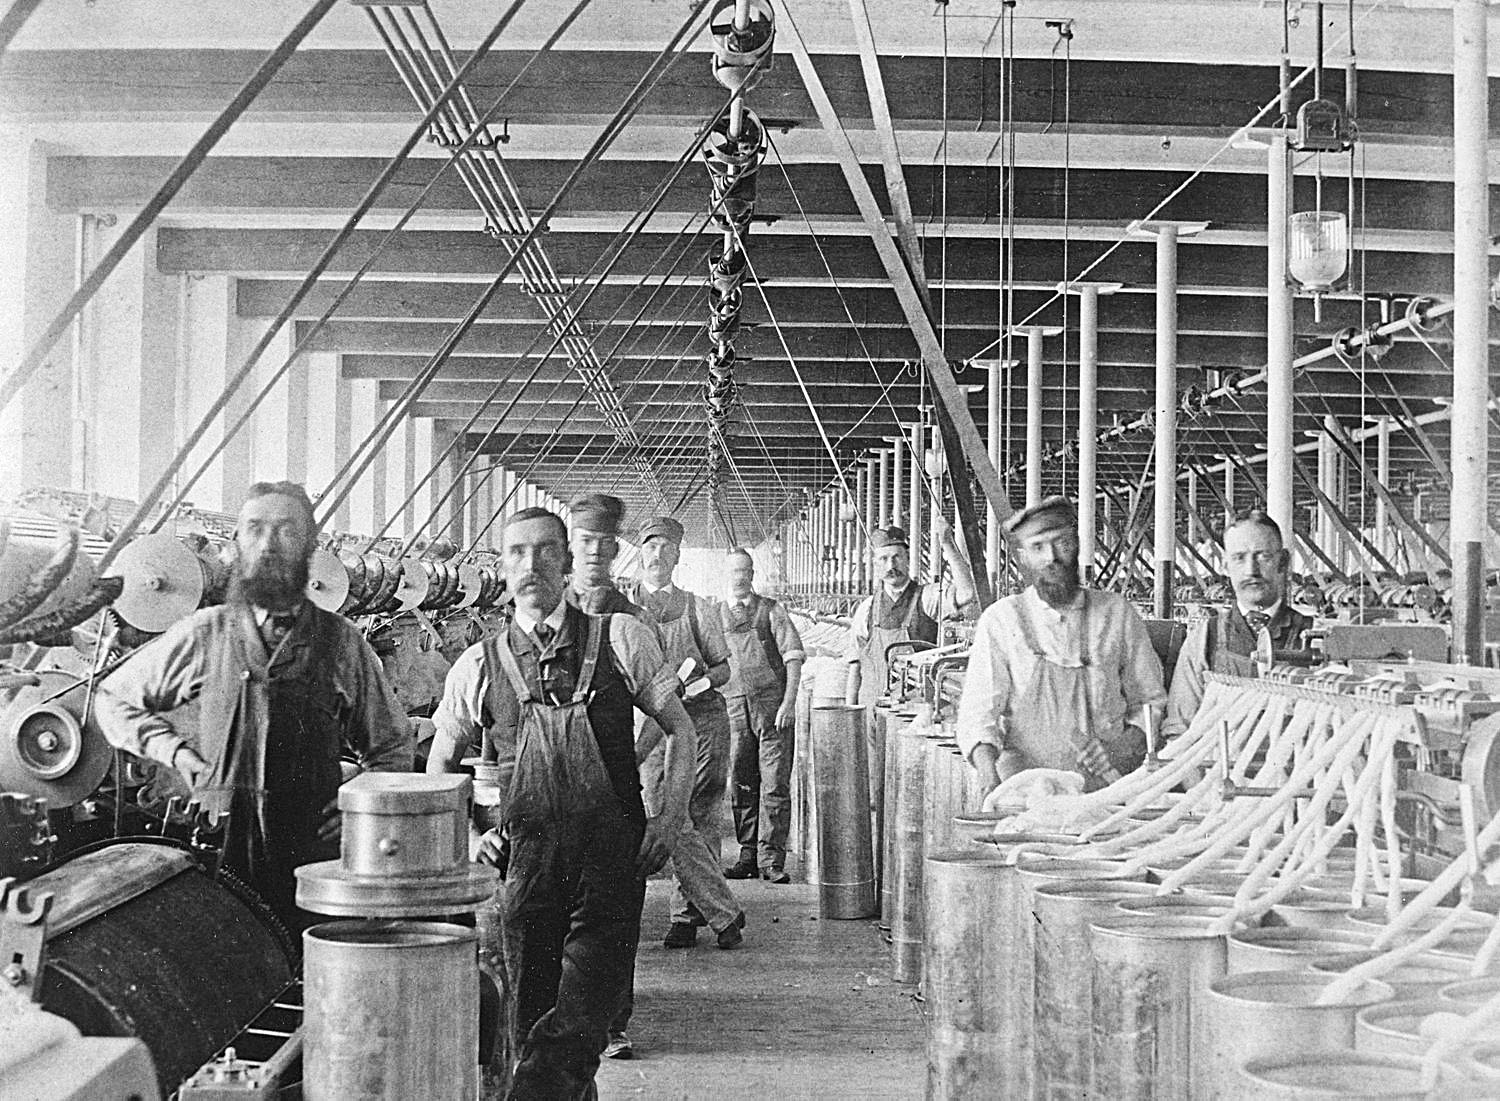 Mill Workers Manchester, New Hampshire